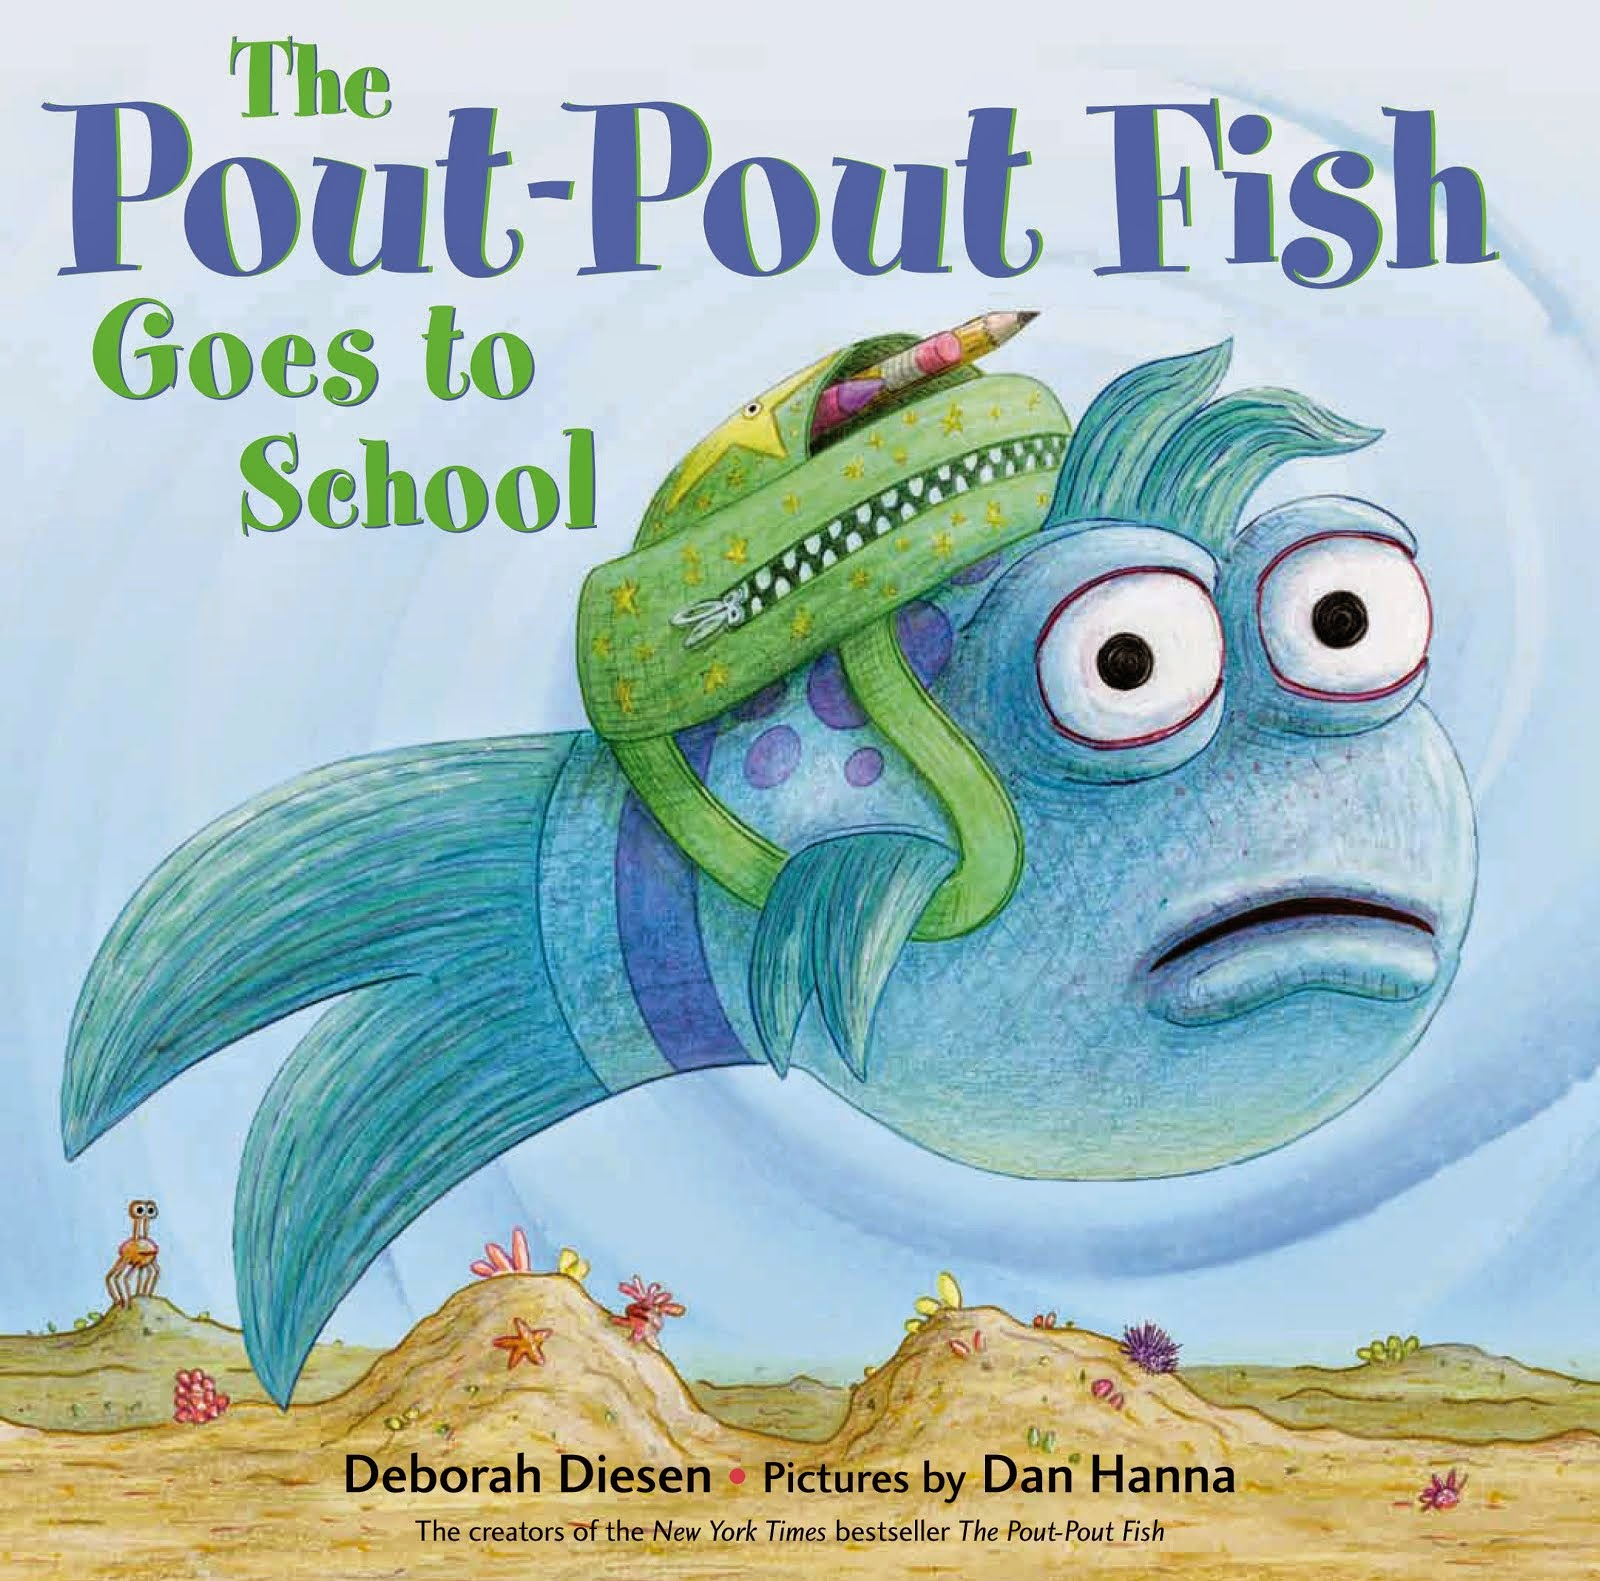 Third full-length Pout-Pout Fish picture book